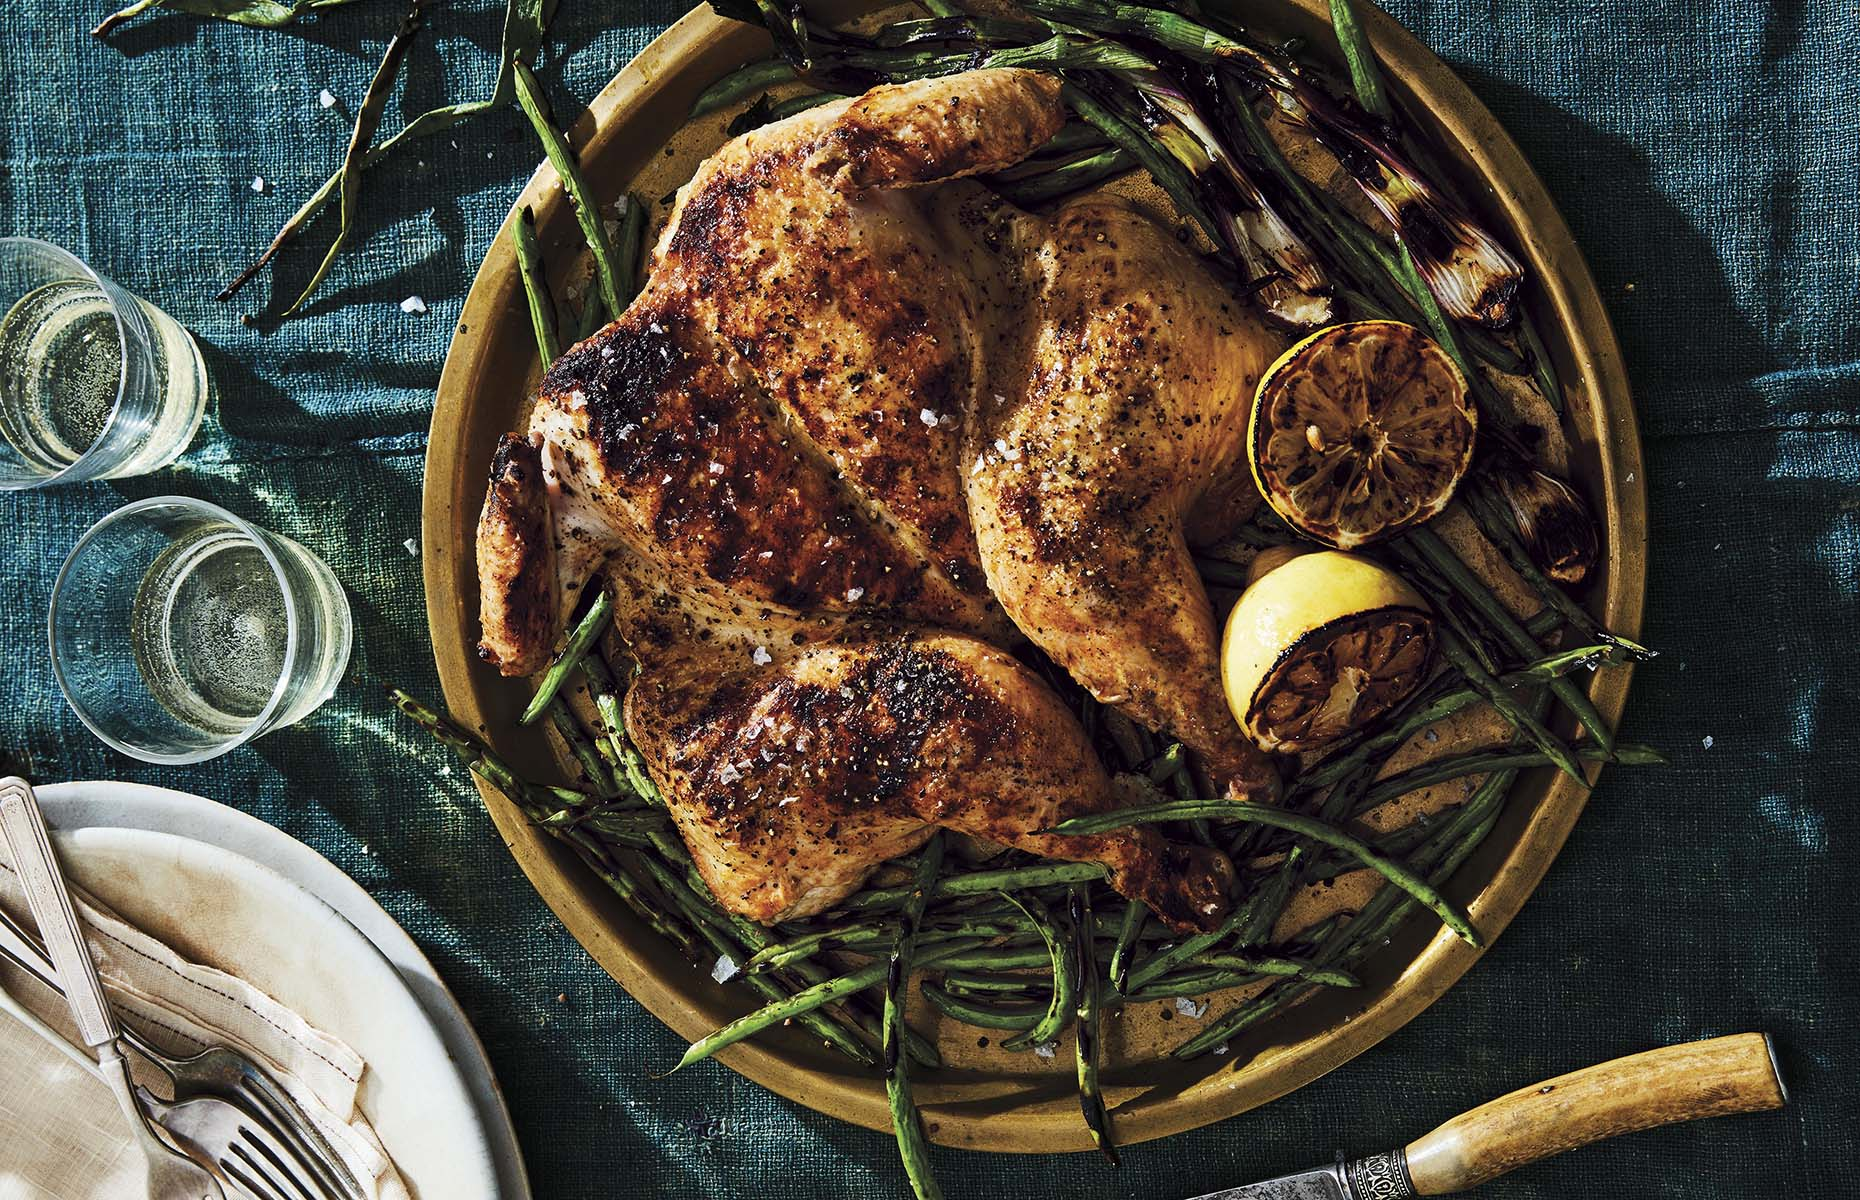 Spatchcocked chicken with green beans (Image: Food52 Any Night Grilling/Ten Speed Press)